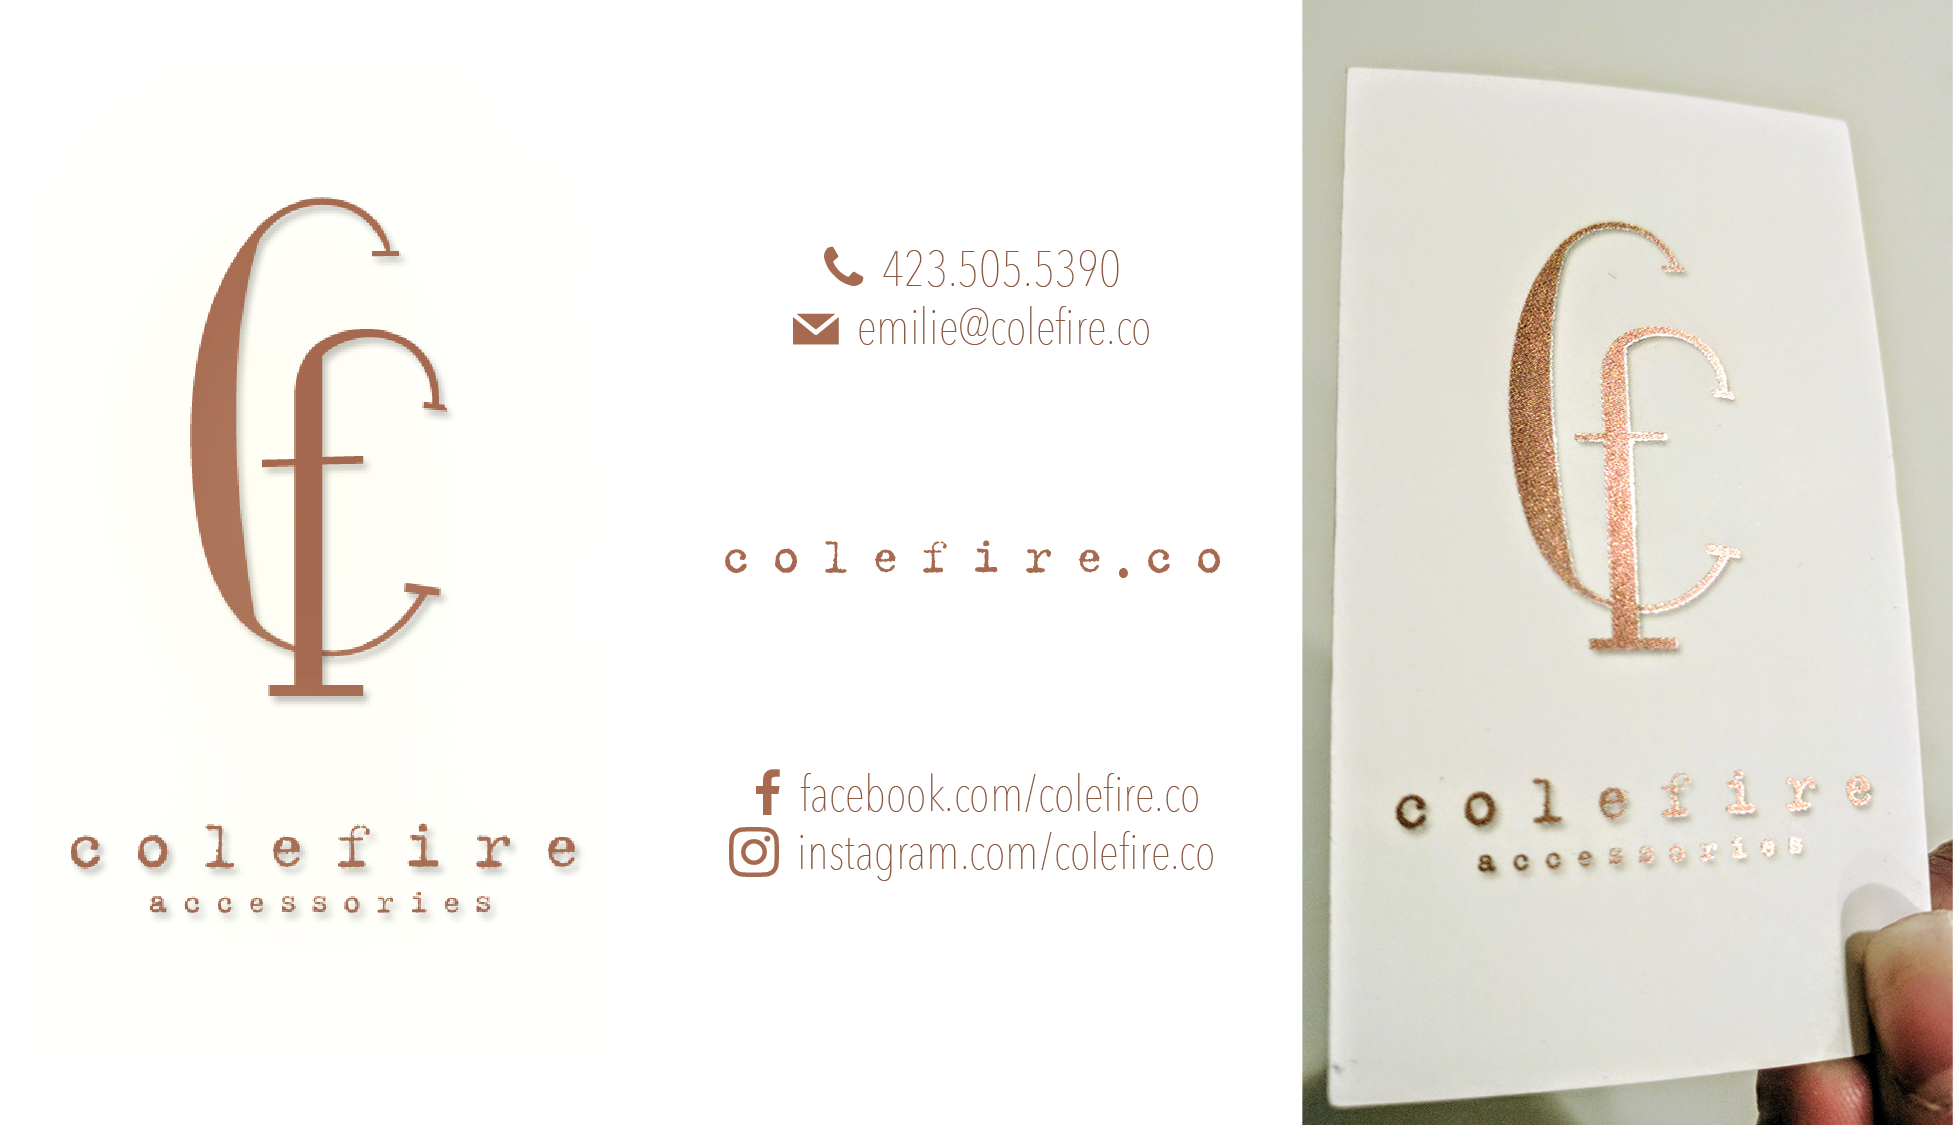 <h4>Colefire Accessories Business Card</h4> 				 				Emilie had this slick logo she wanted to use on her business cards, so rather than shrink it into a corner somewhere to fit all her information around it, I decided to let it shine on its own on the front, with the overlapping initials logomark scaled up to fill out a vertical card, and put the details on the back. I pulled the rough typewriter-esque font from the name, and paired it with a tall, slim, lightweight font that echos the logomark. To really make the card sing, I had the printing on the front metalicized in a fabulous rosy copper color, echoing the metals Emilie uses in her jewelry.